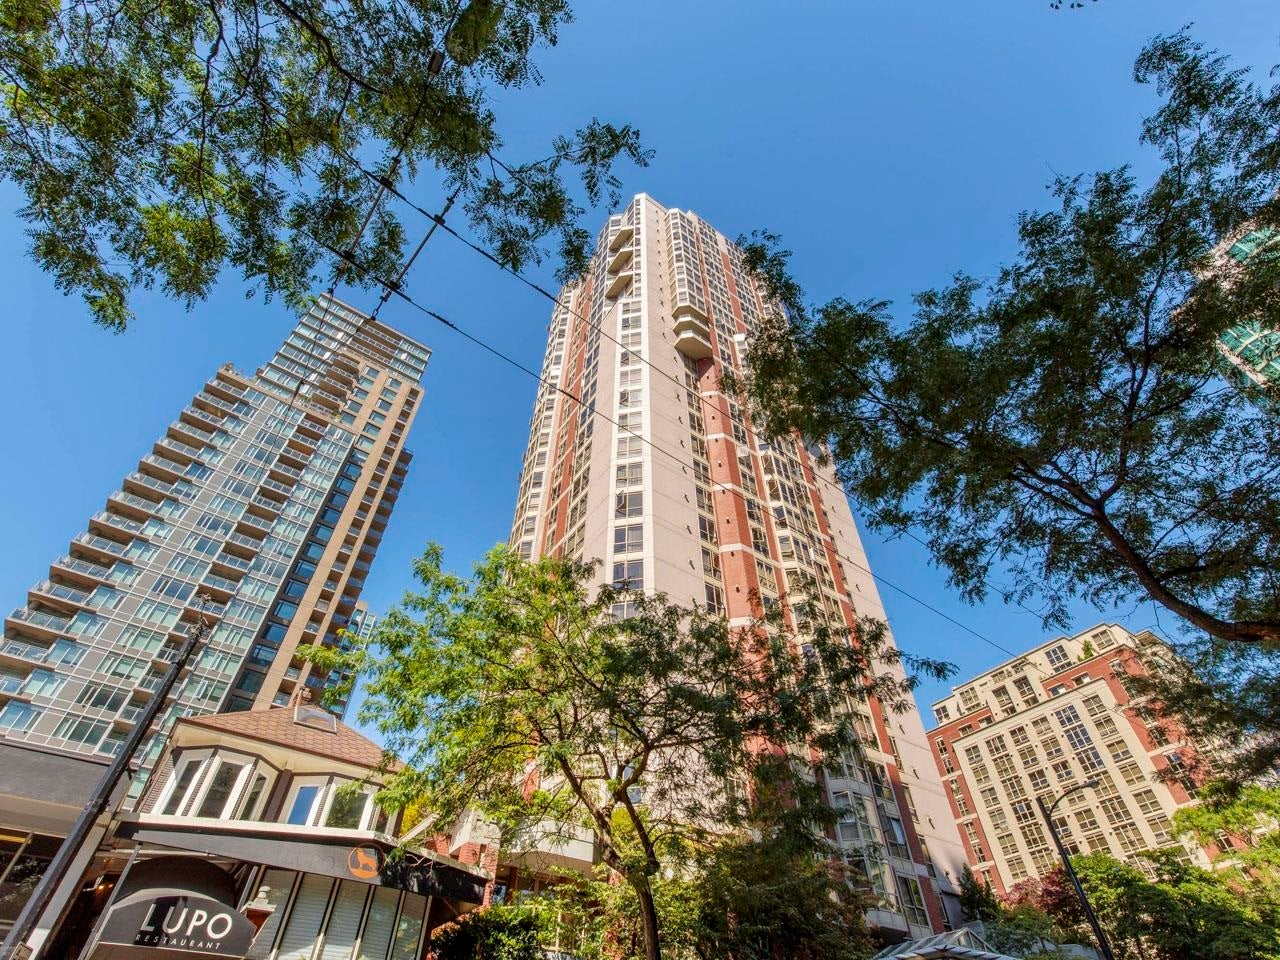 703 867 HAMILTON STREET - Downtown VW Apartment/Condo for sale, 2 Bedrooms (R2616057) - #1